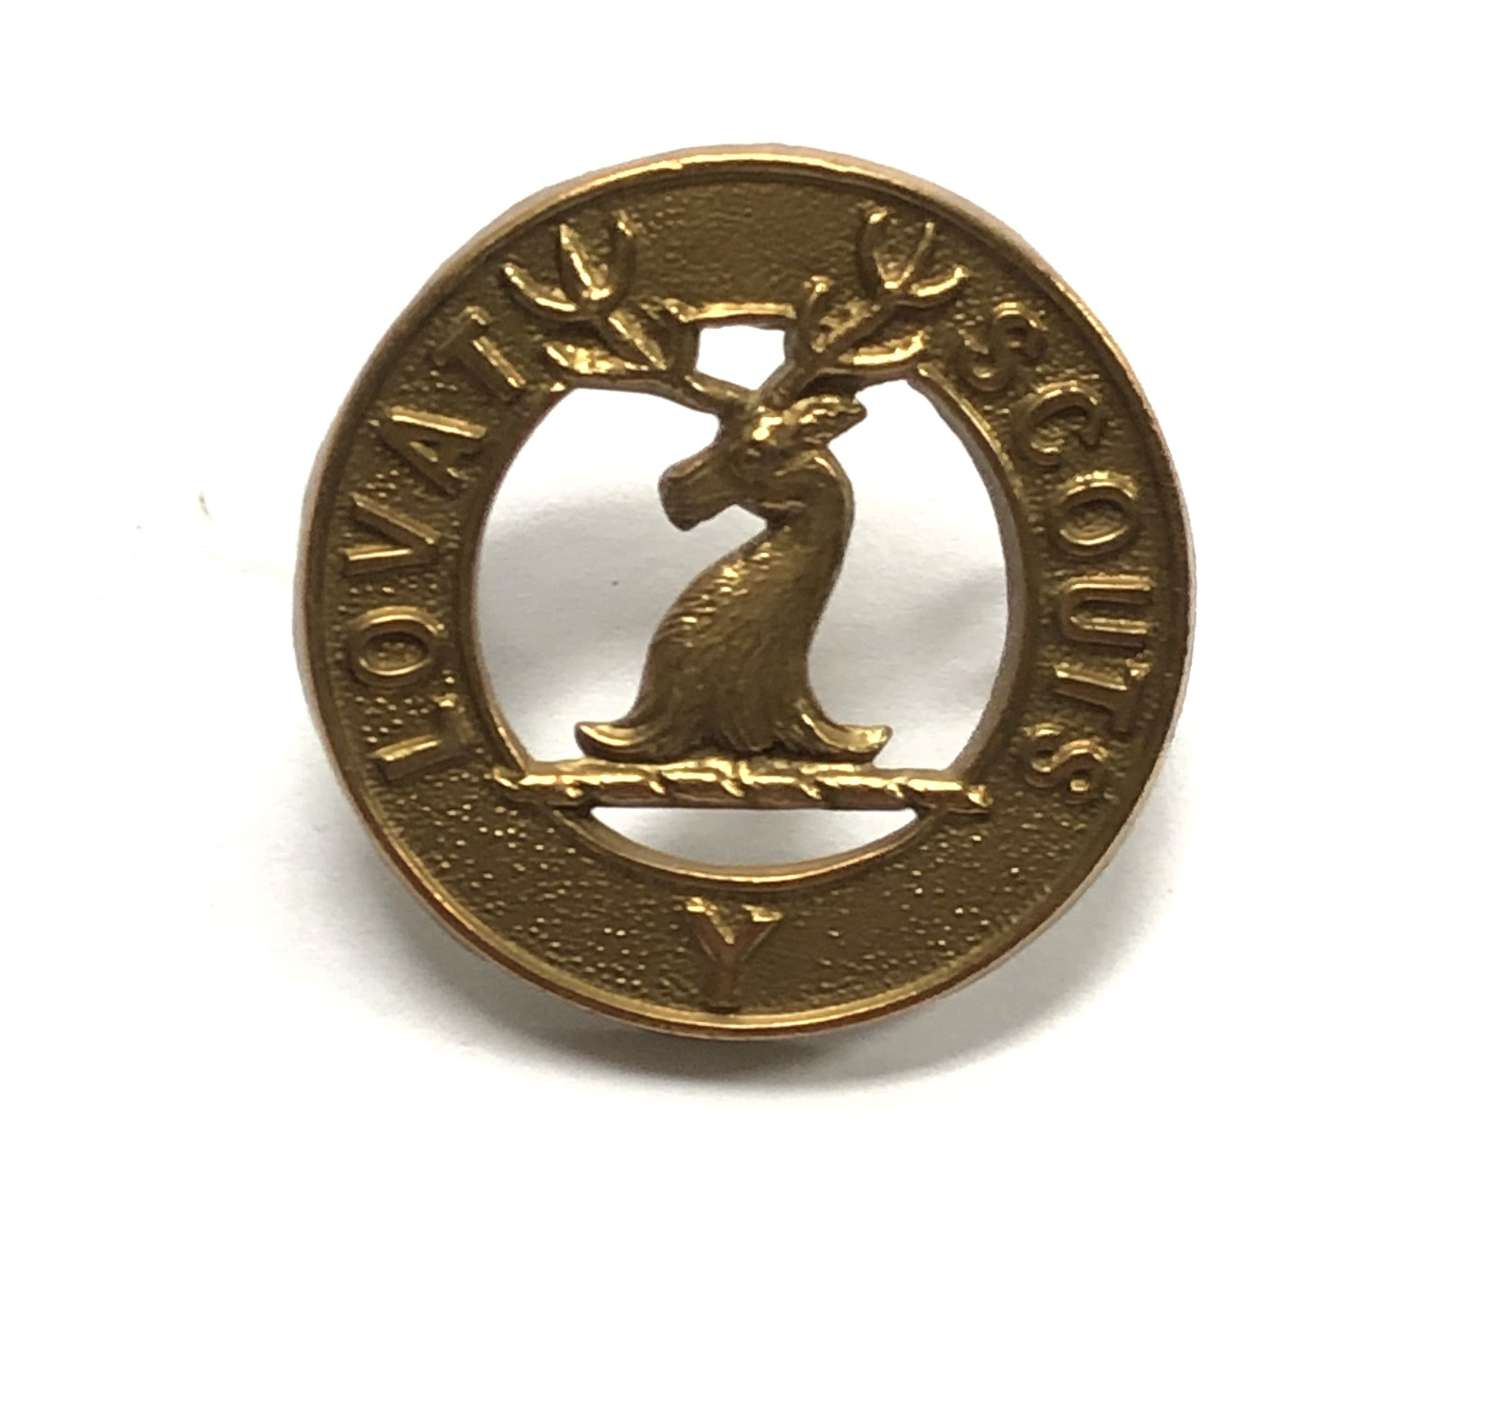 Lovat Scouts Yeomanry larger pattern brass cap badge